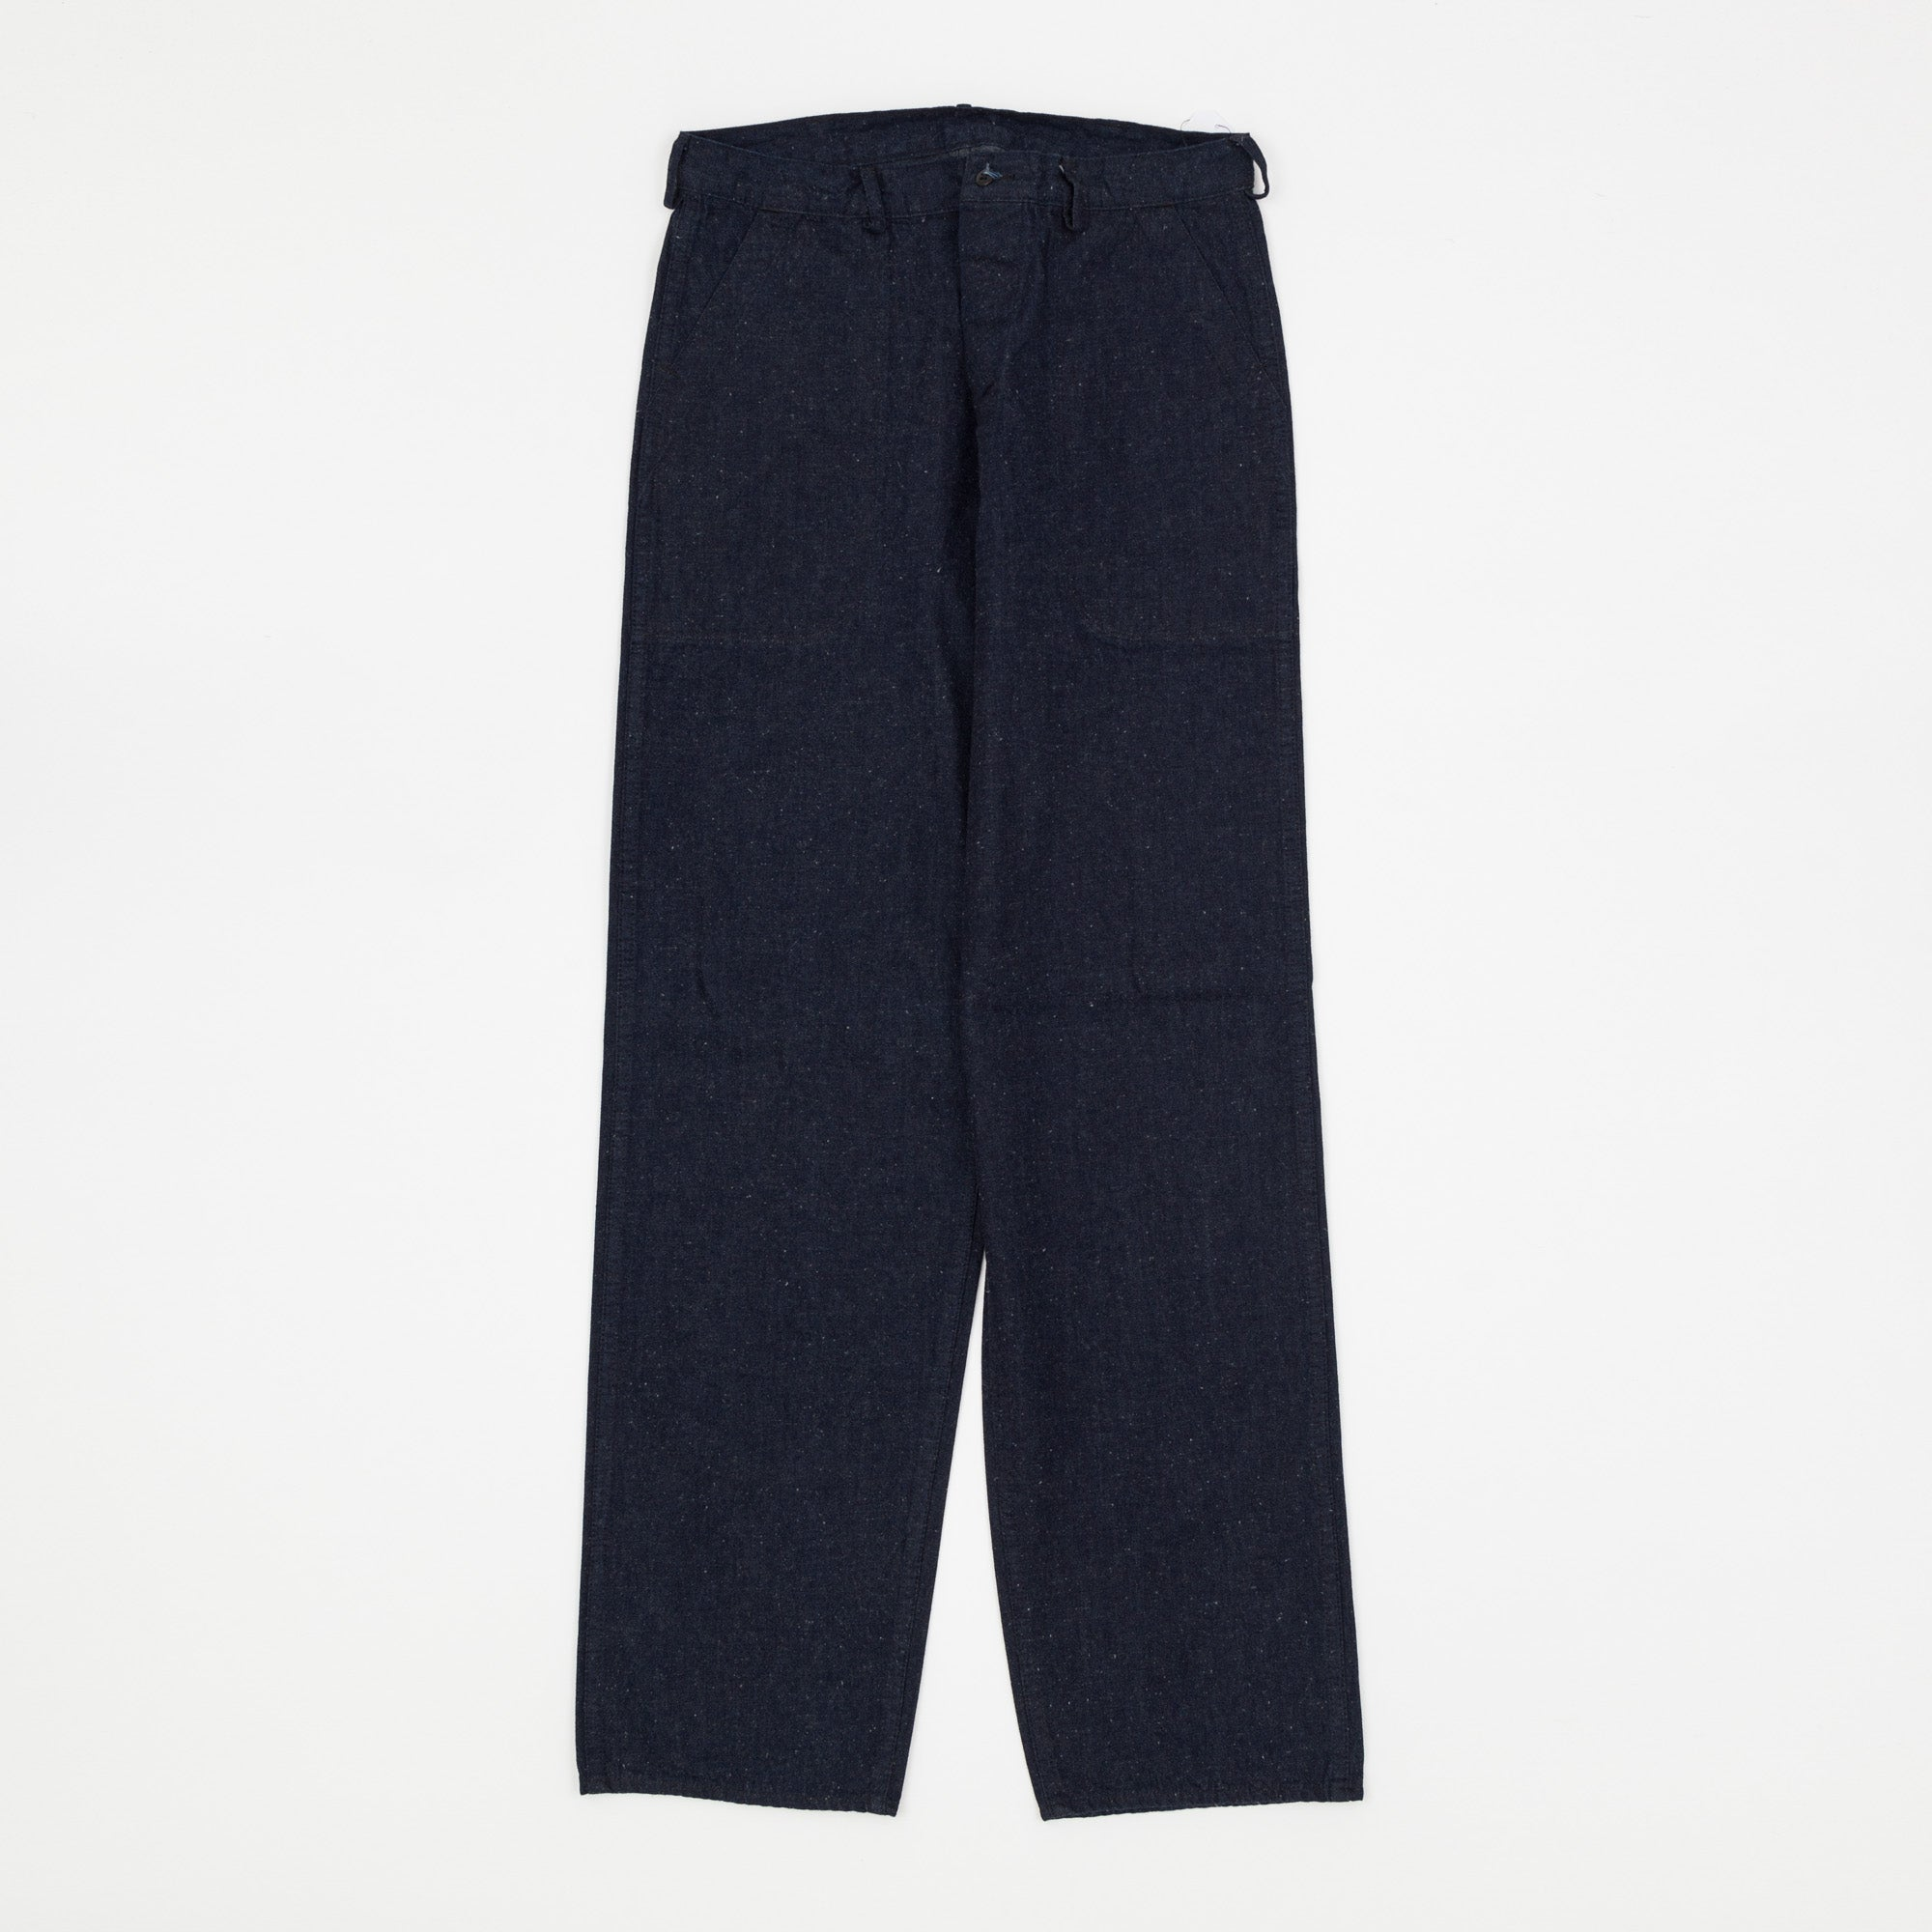 TCB DENIM Seaman's Trousers